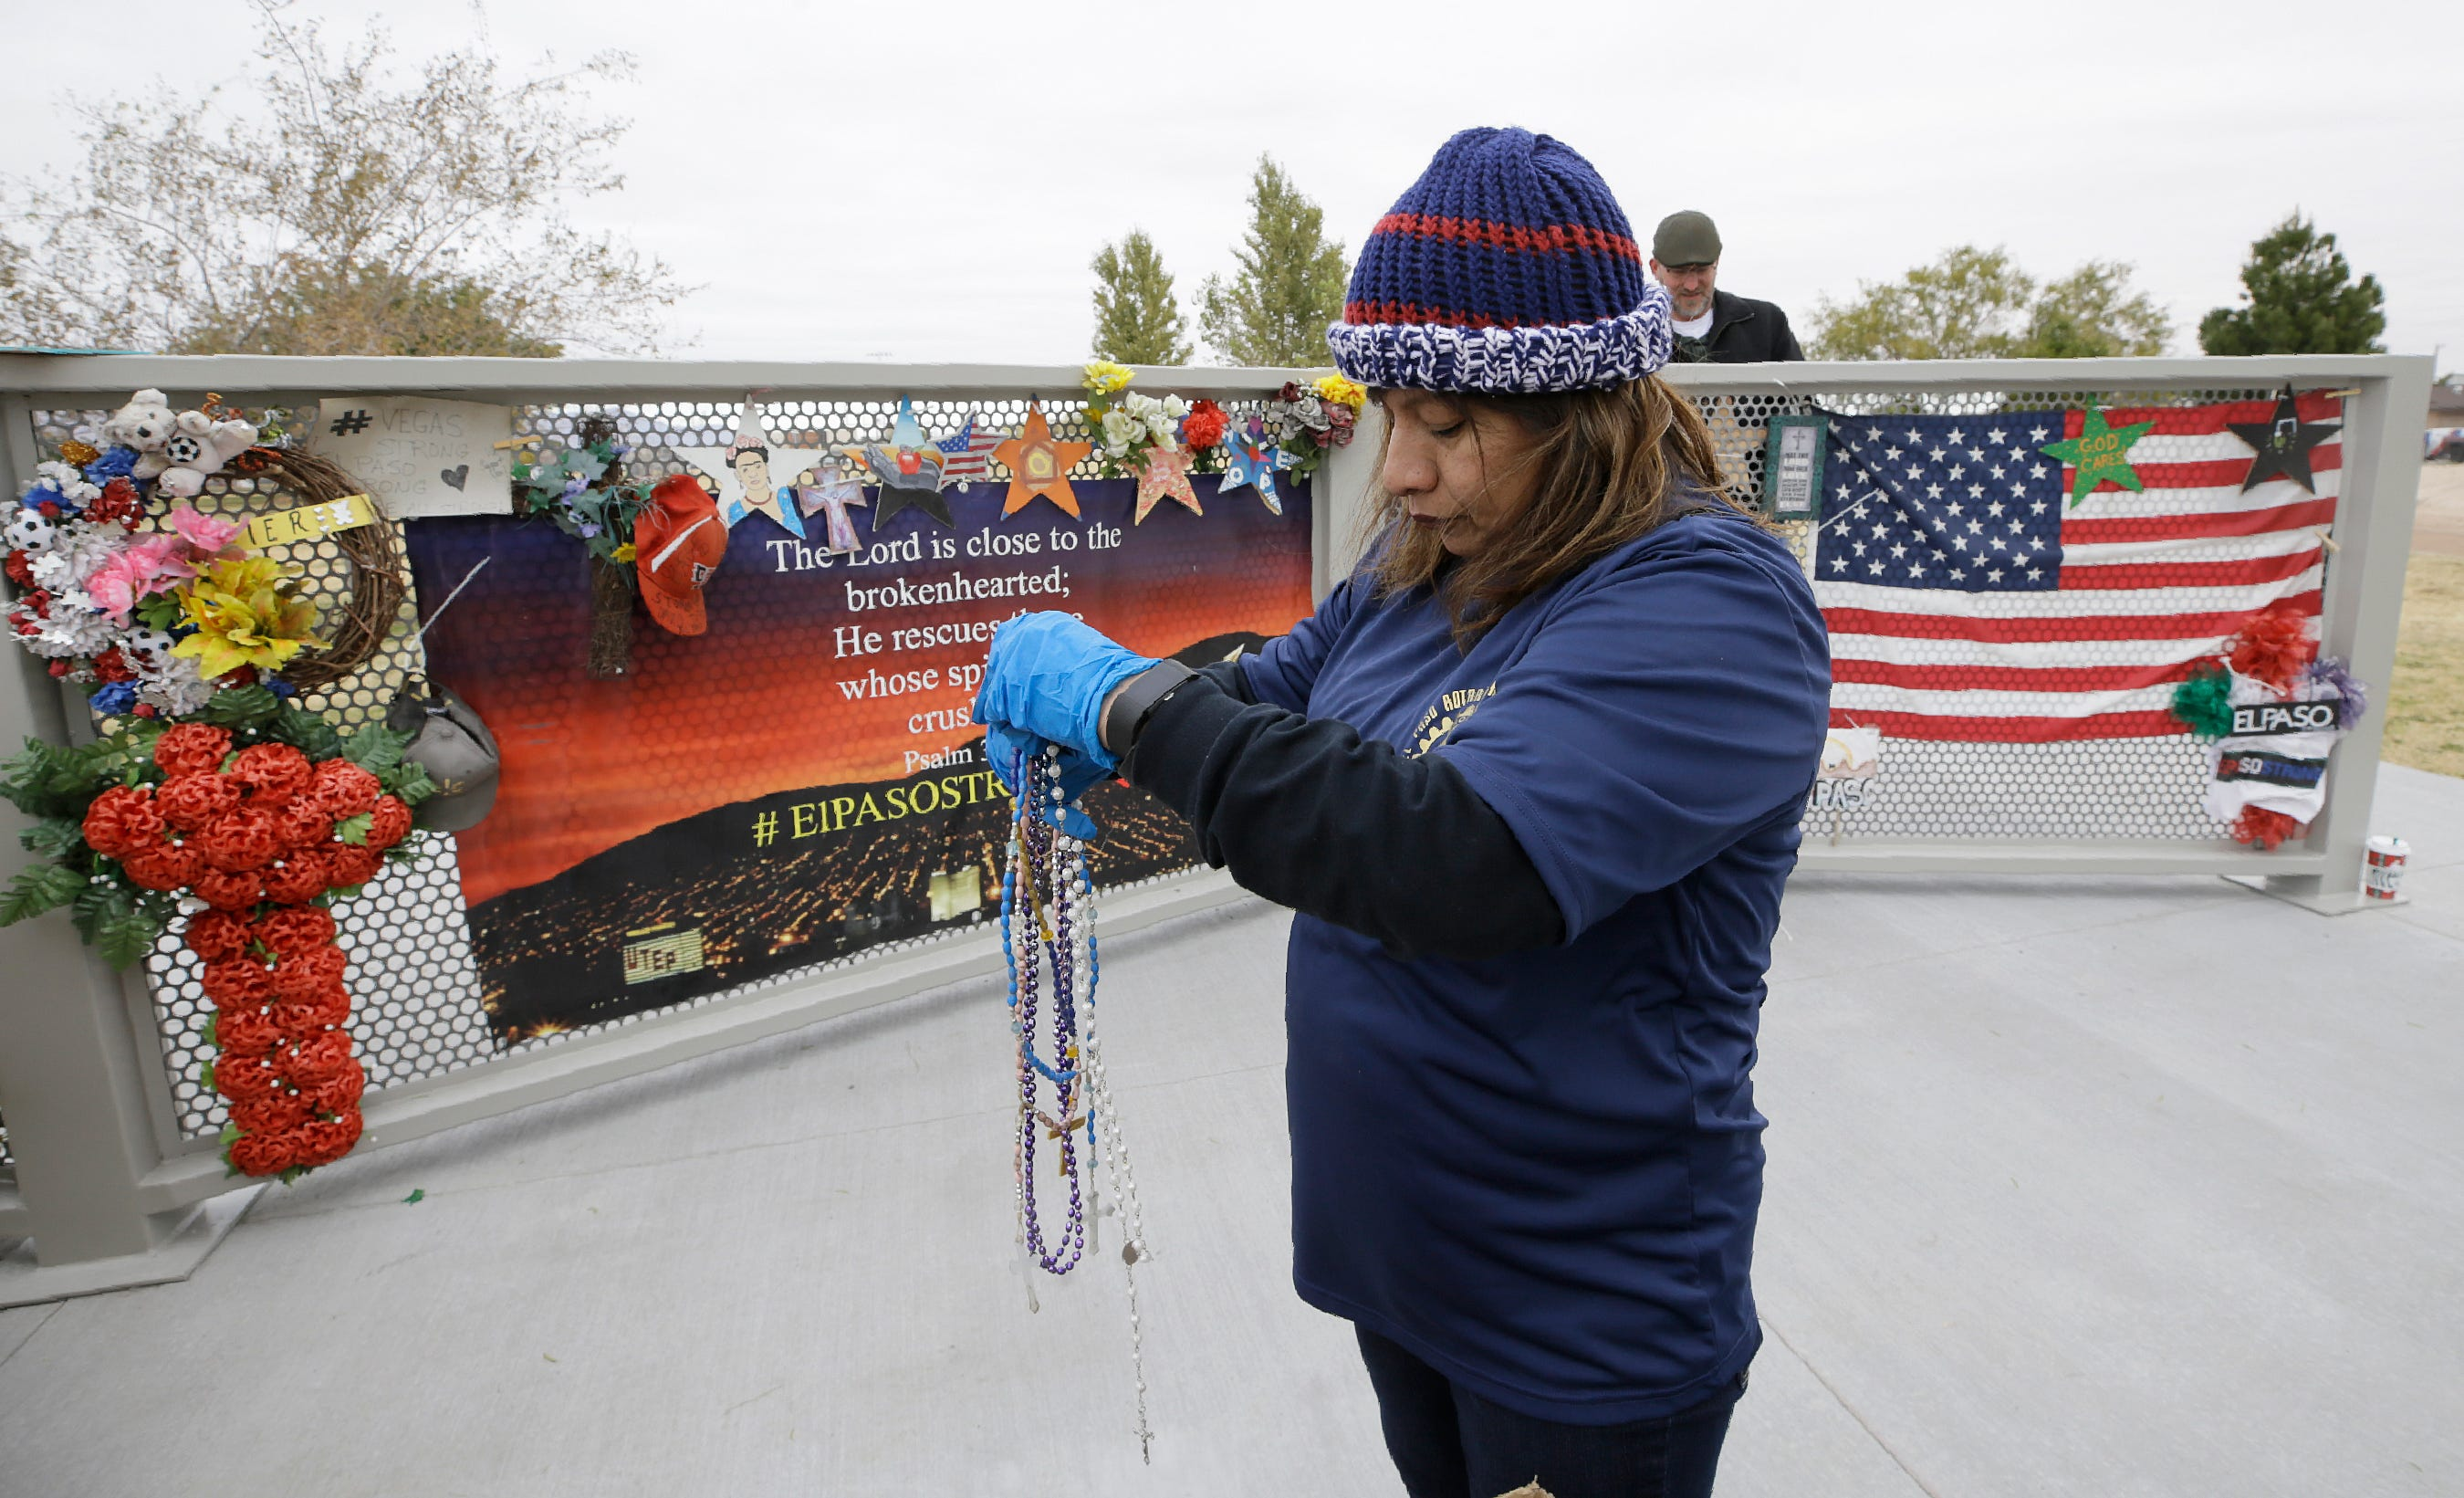 El Paso shooting memorial moved to Ponder Park